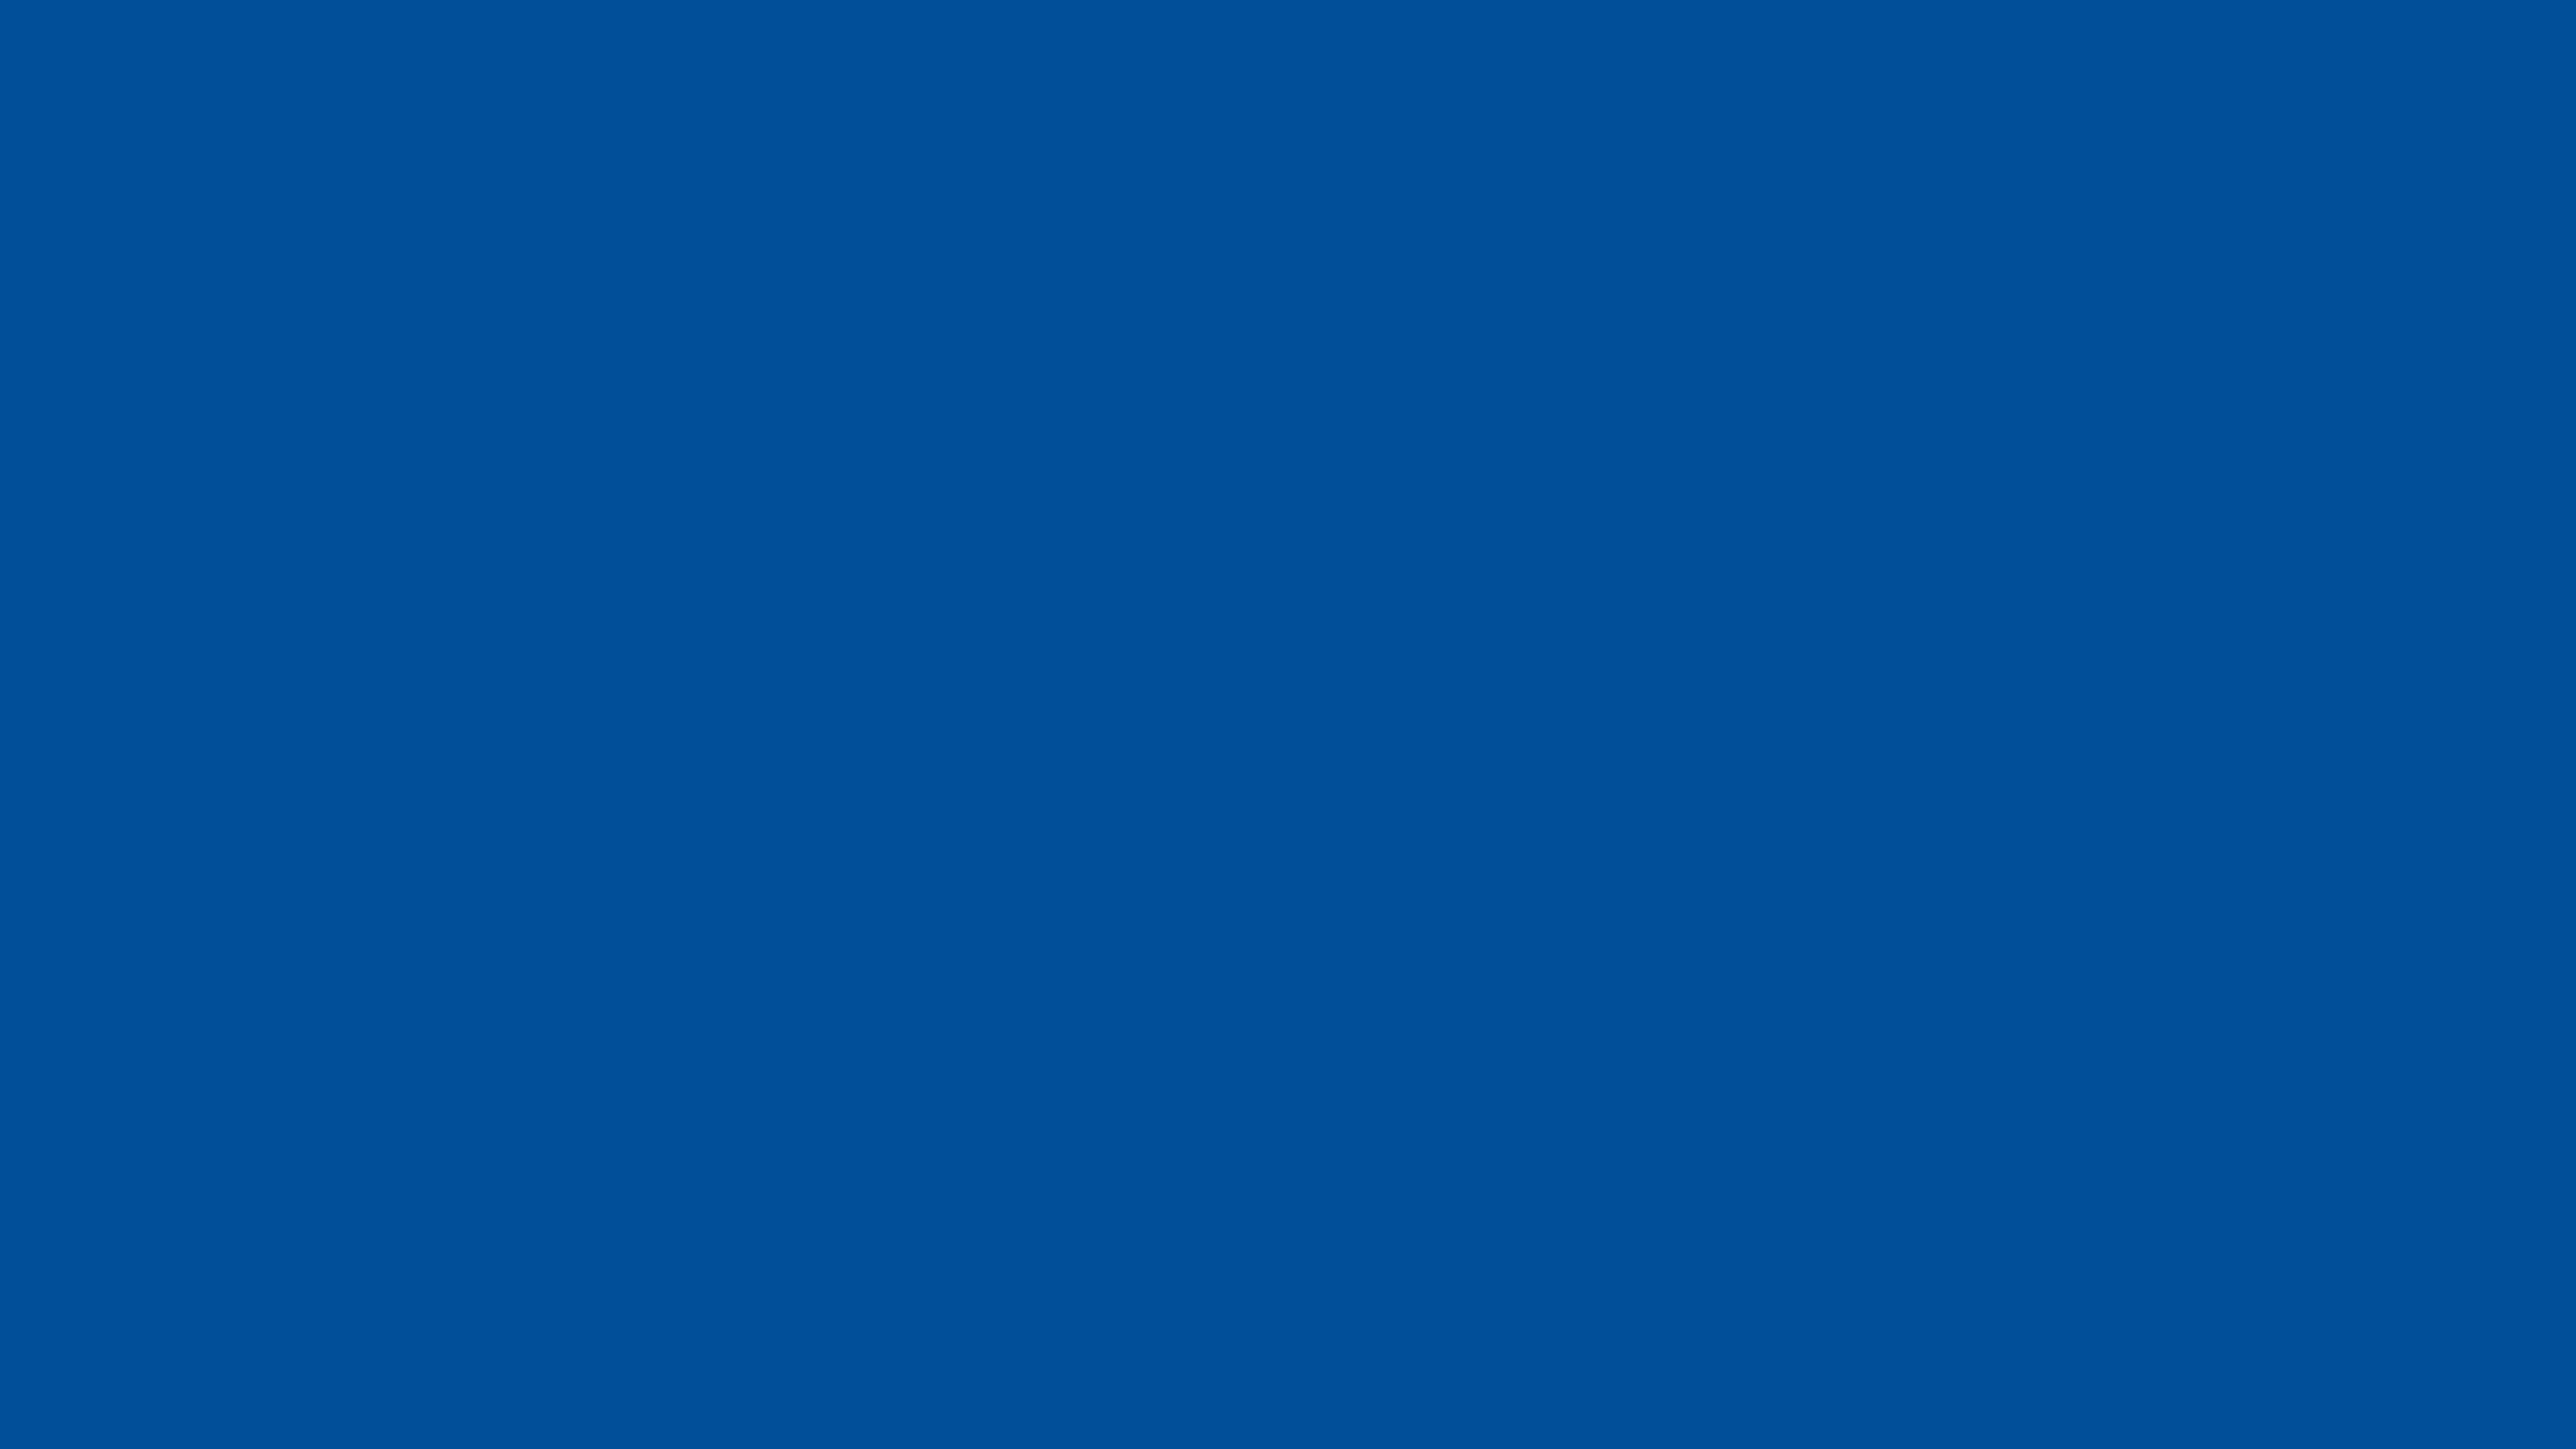 7680x4320 USAFA Blue Solid Color Background